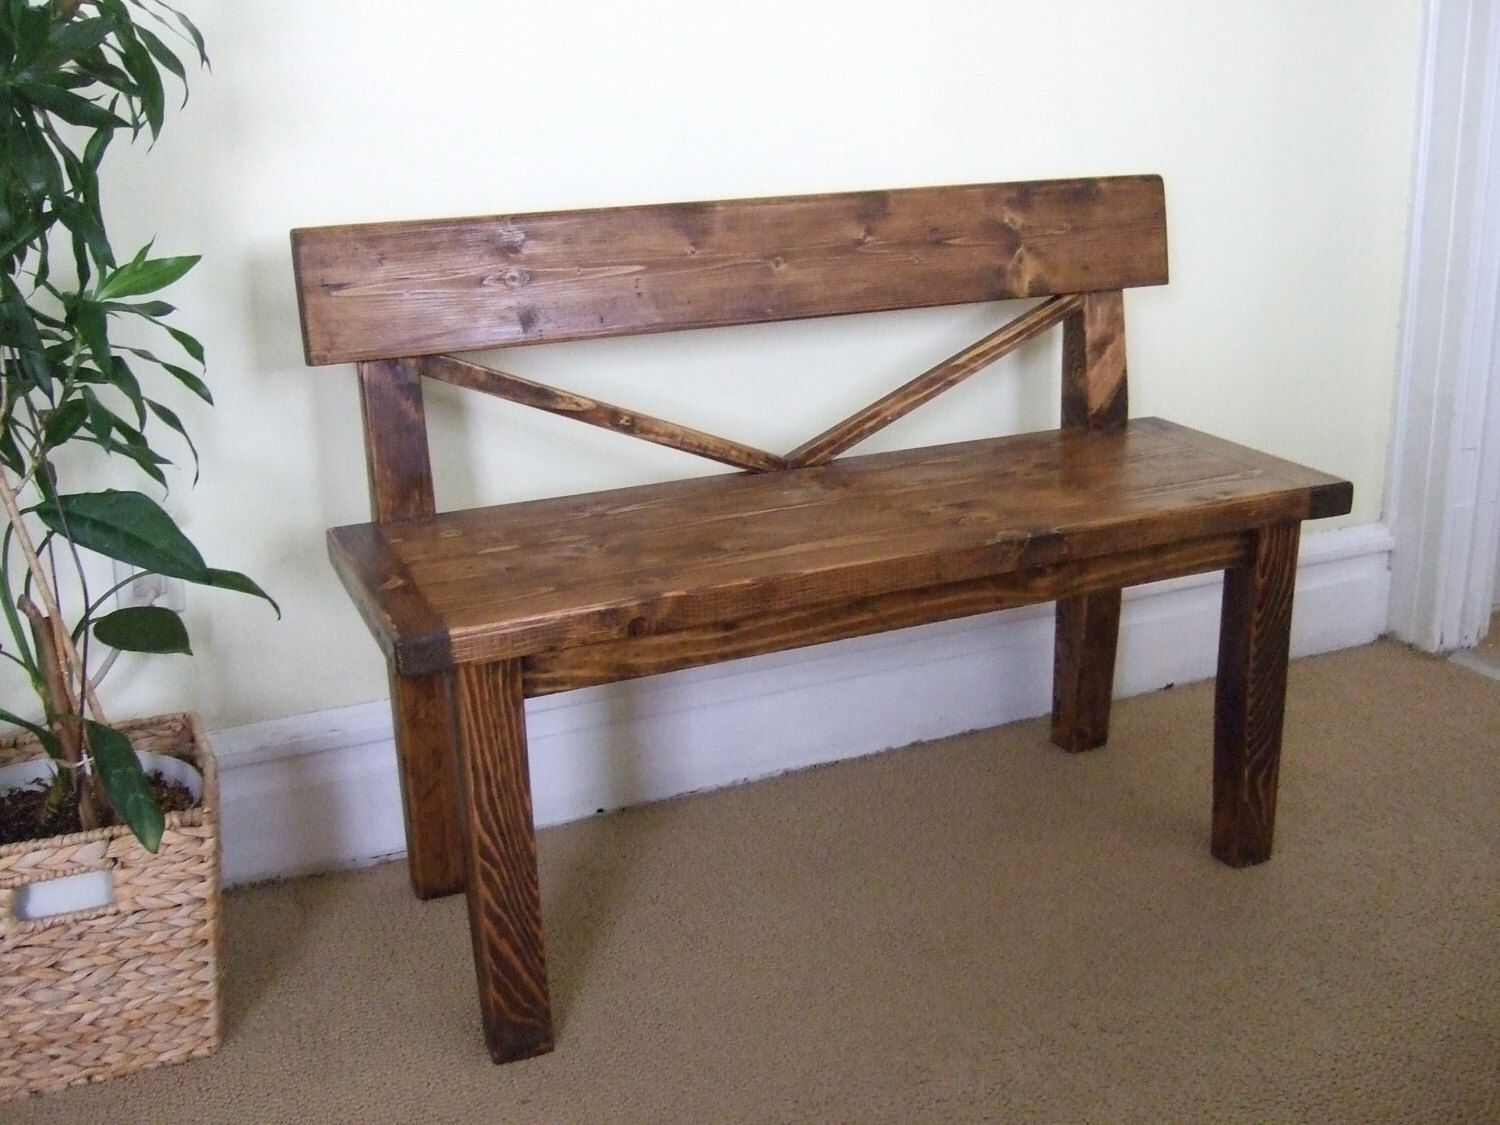 Farmhouse Style Bench | Rustic Bench With Back | Solid Wood Bench |  Handmade Bench By